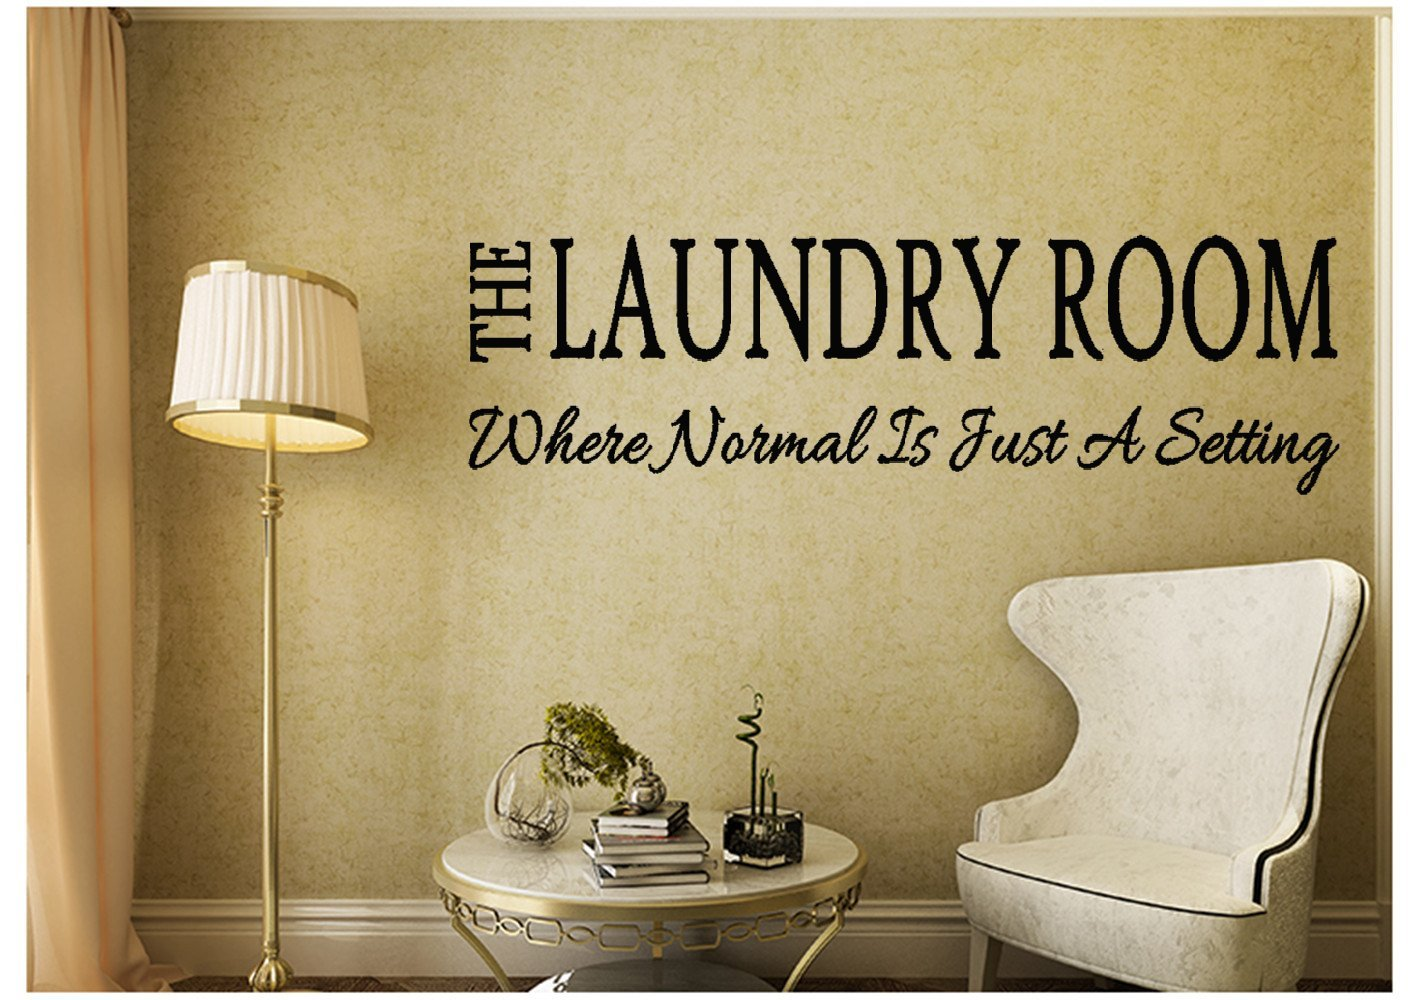 Amazon.com: 24x6 The Laundry Room Where Normal Is Just A Setting ...